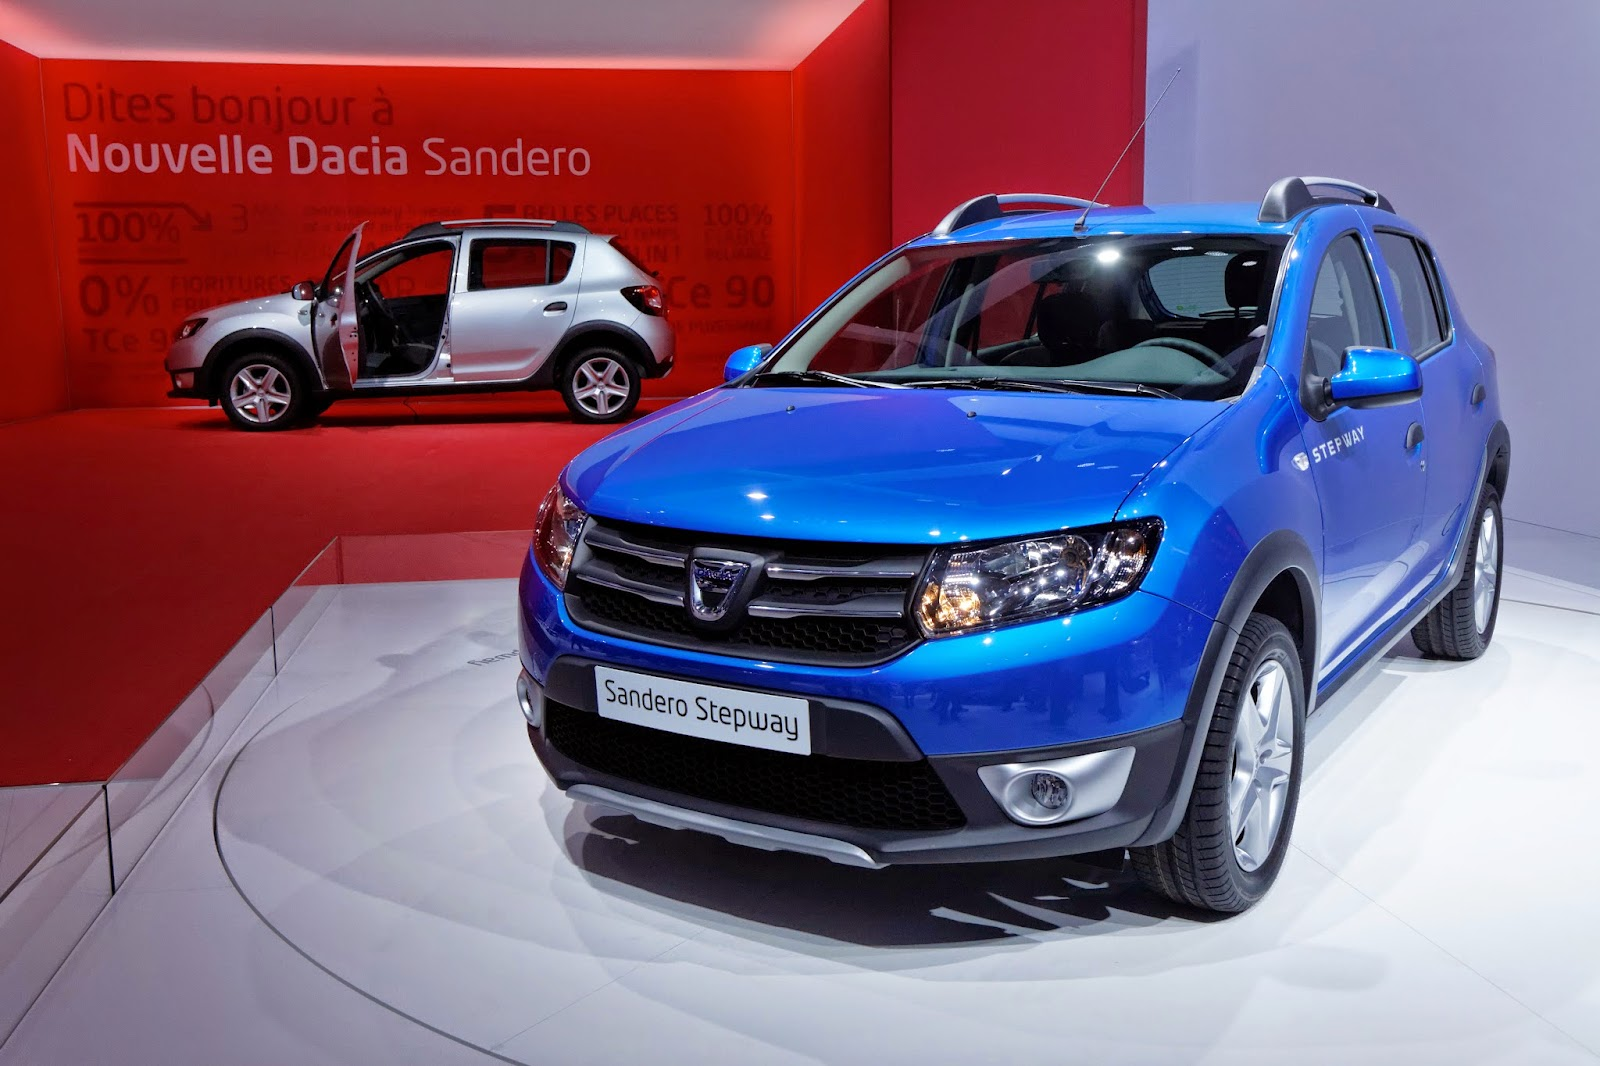 Dacia Sandero Stepway at the 2012 Paris Motor Show